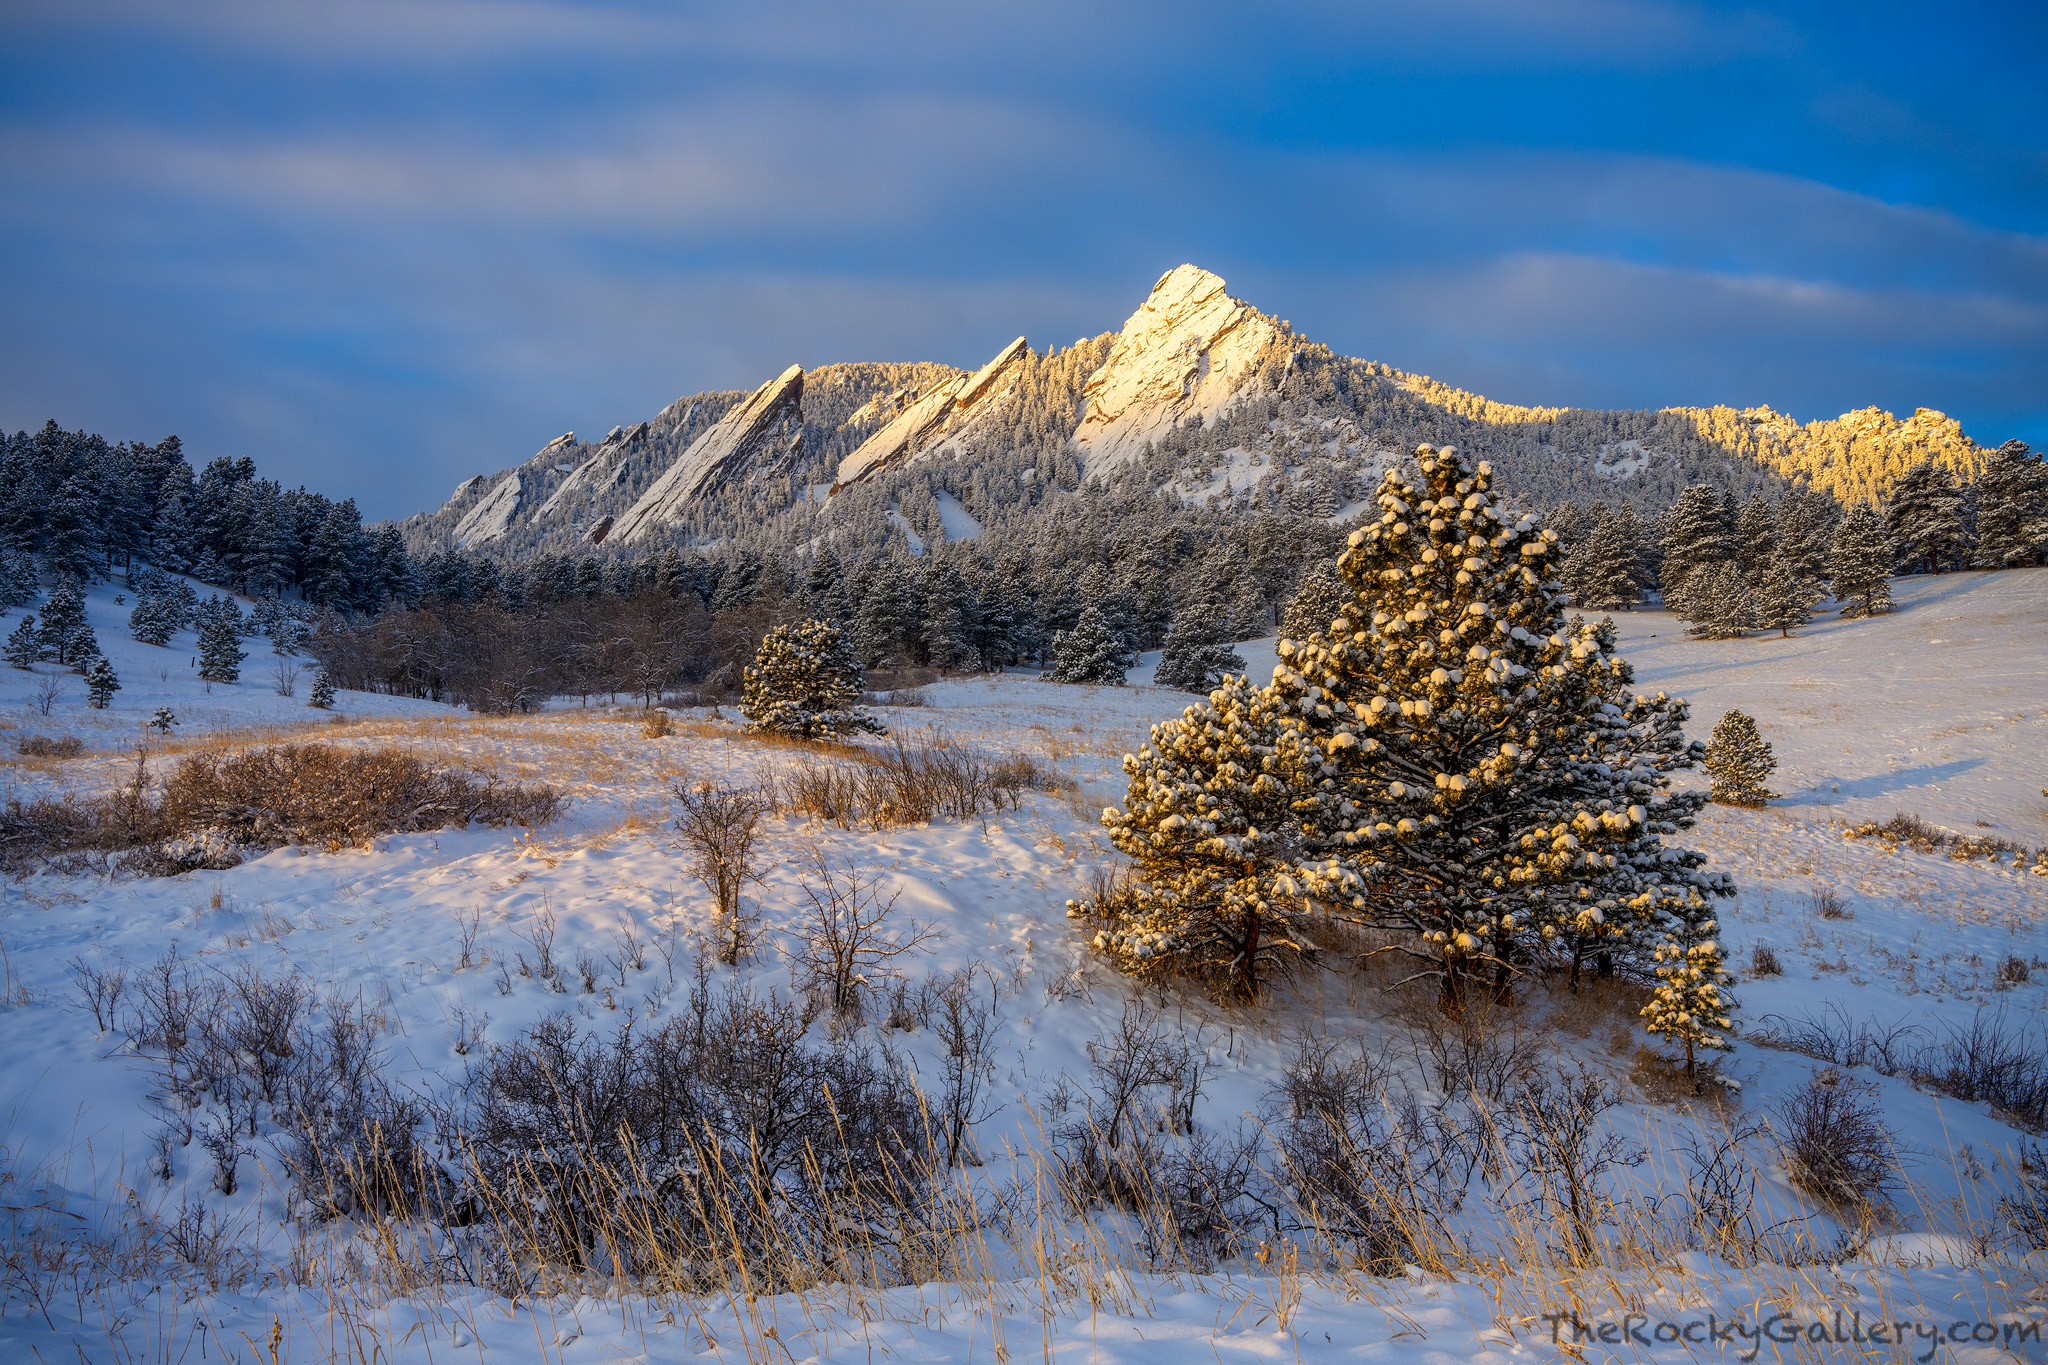 Snow fell all night on Boulder, Colorado leaving its famous Flatiron formation covered in white powder. Out in Chautauqua Meadow...